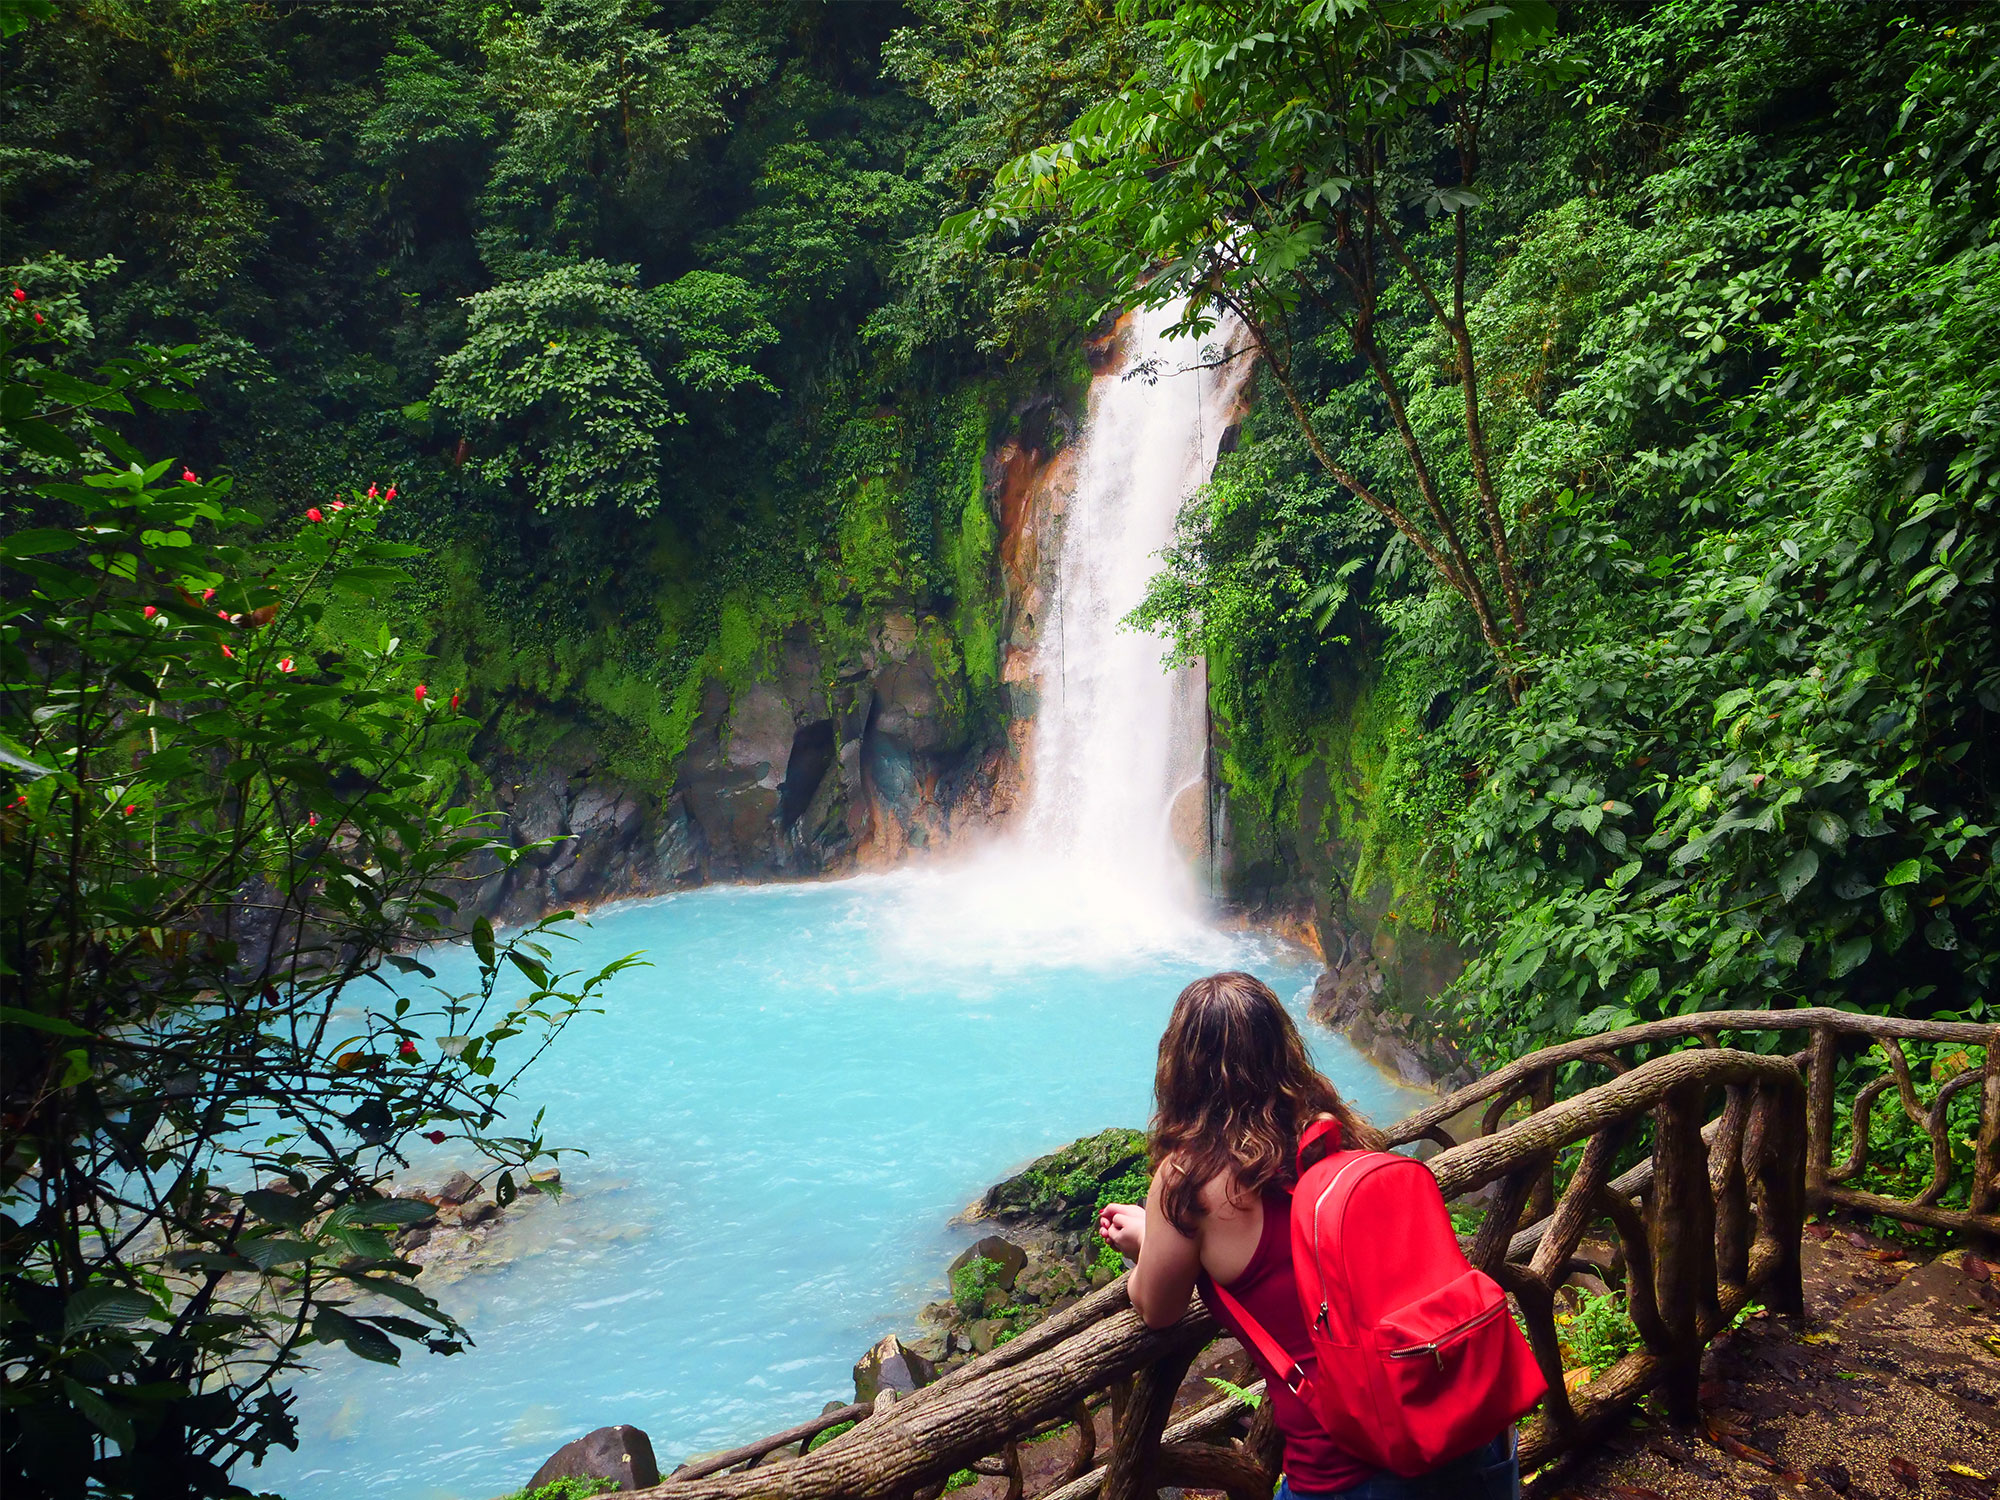 Hiking to a waterfall in Costa Rica